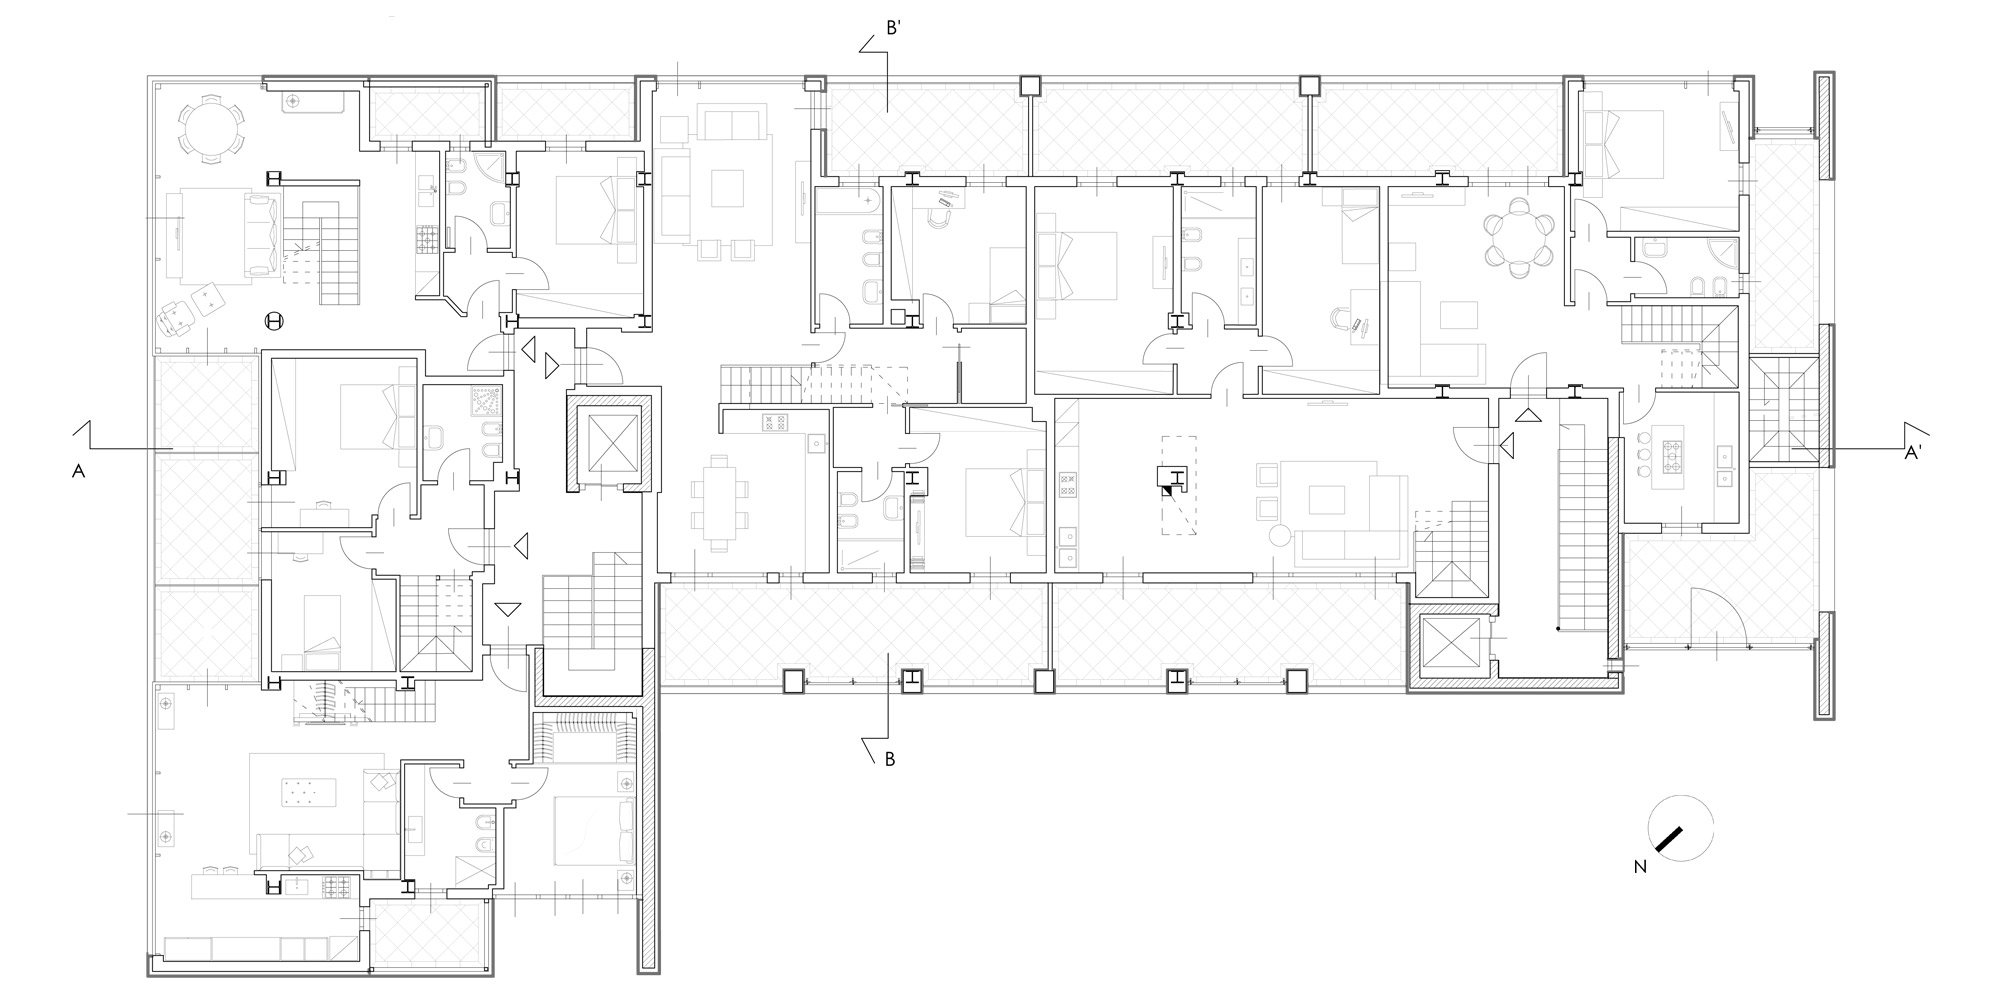 Third floor plan © Cantini&Partners